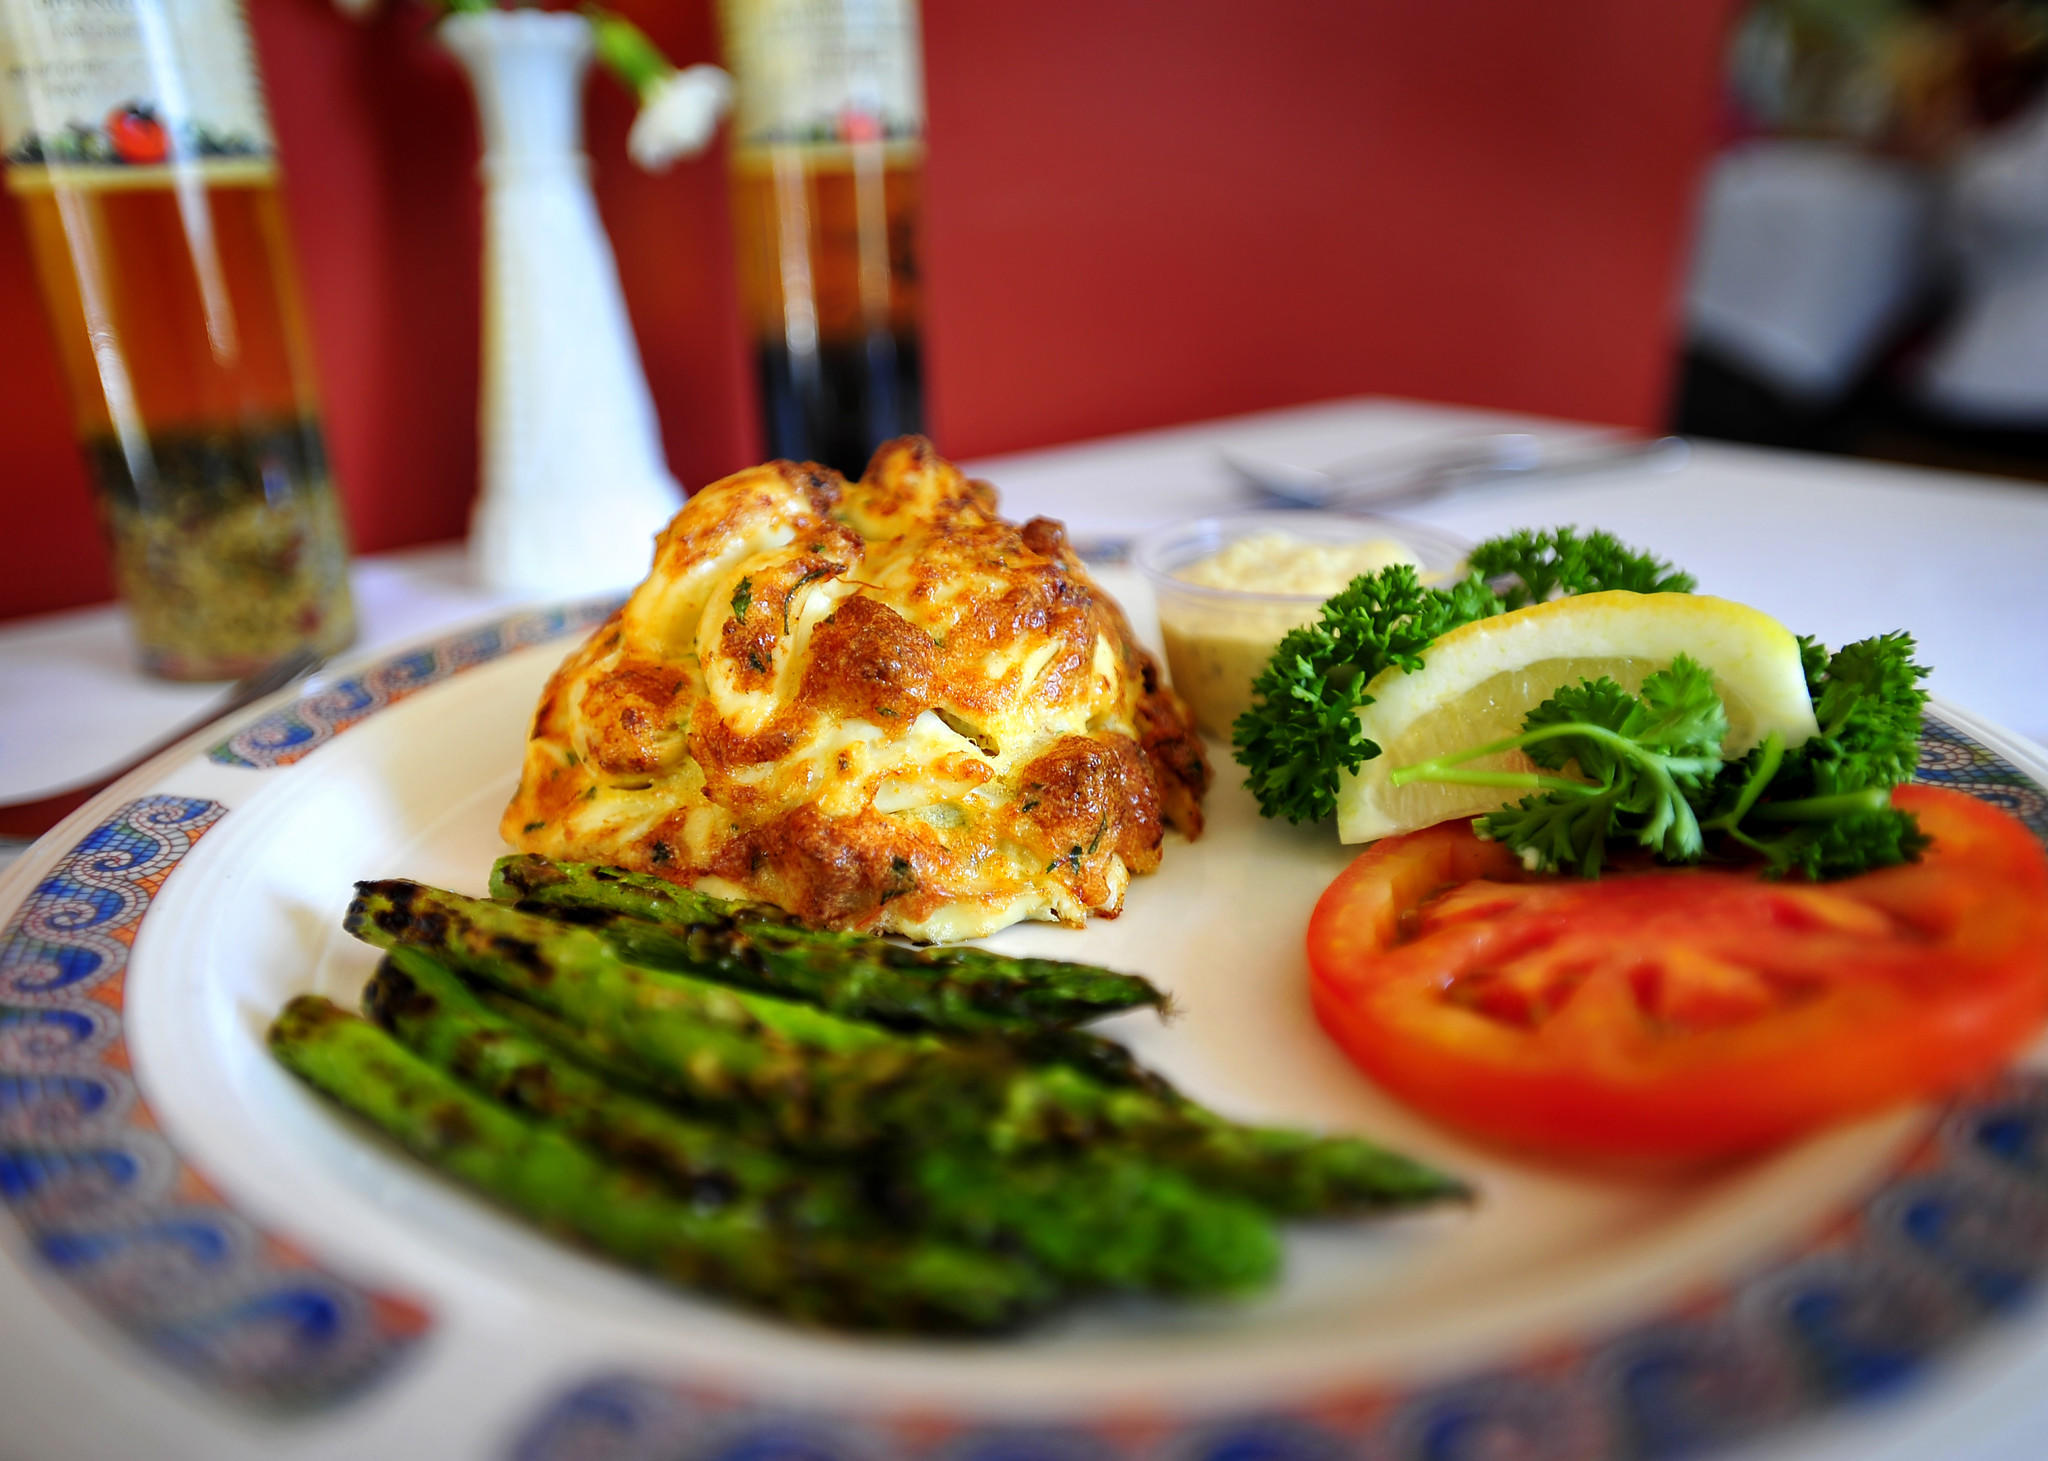 This crab cake platter was photographed at Pappas restaurant in Parkville, whose owners have opened a new location in Cockeysville.